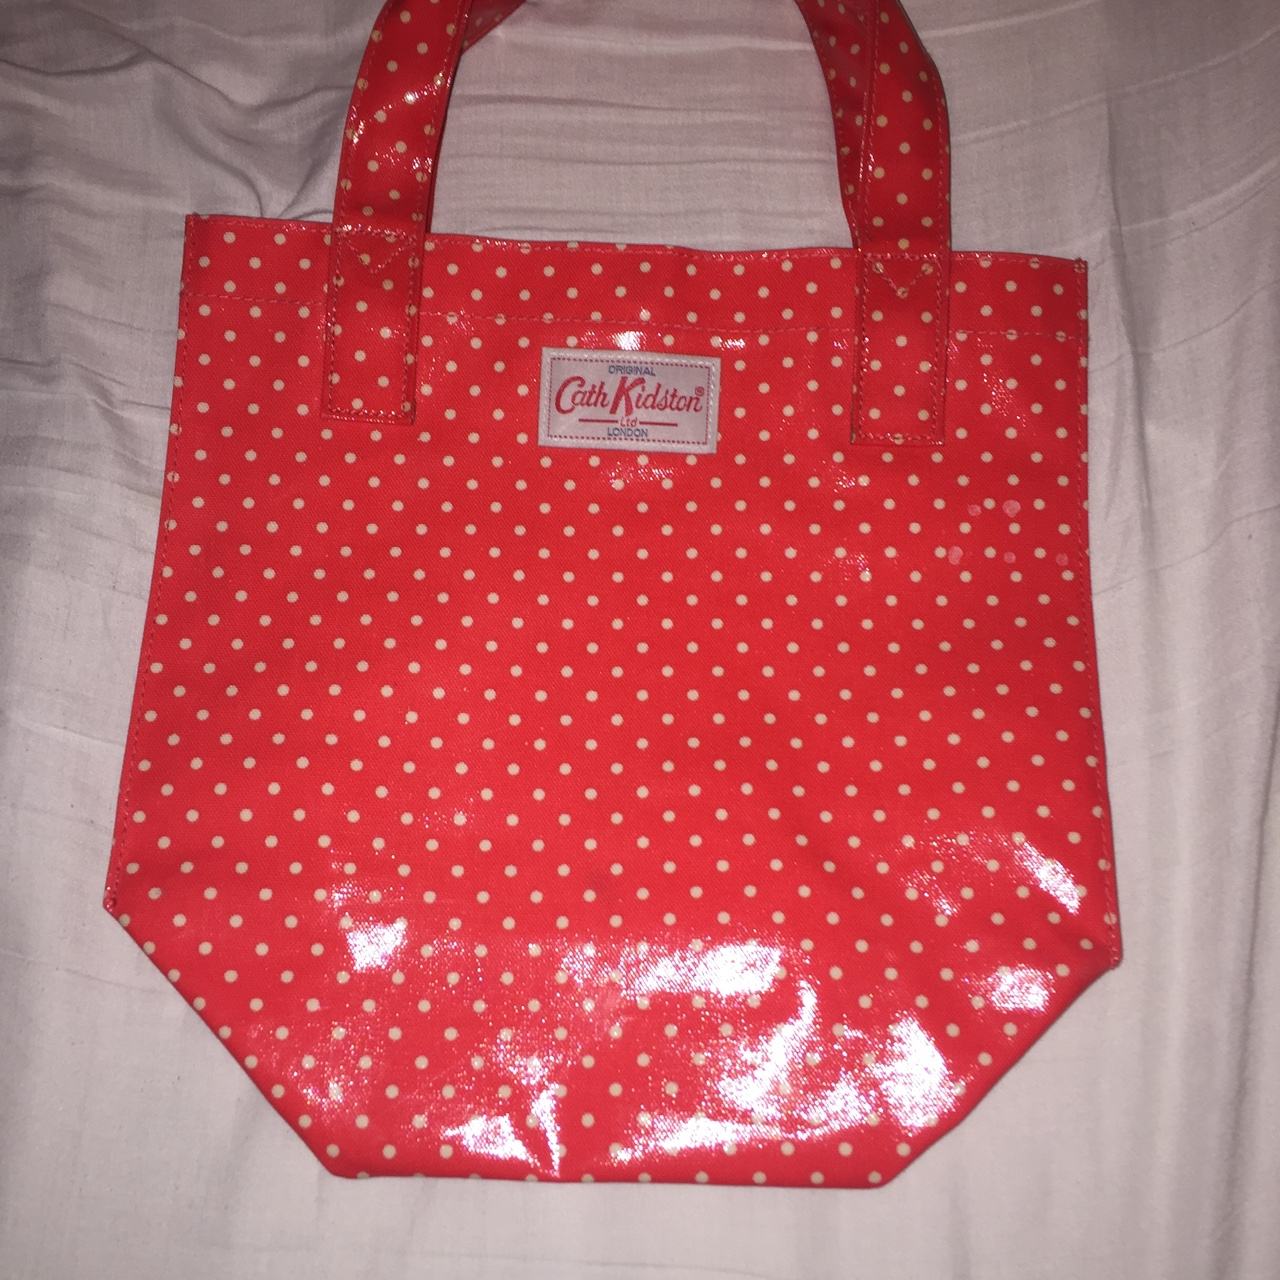 5ab5109e2 Cath Kidston red polka dotted bag bought in Canada only ever - Depop